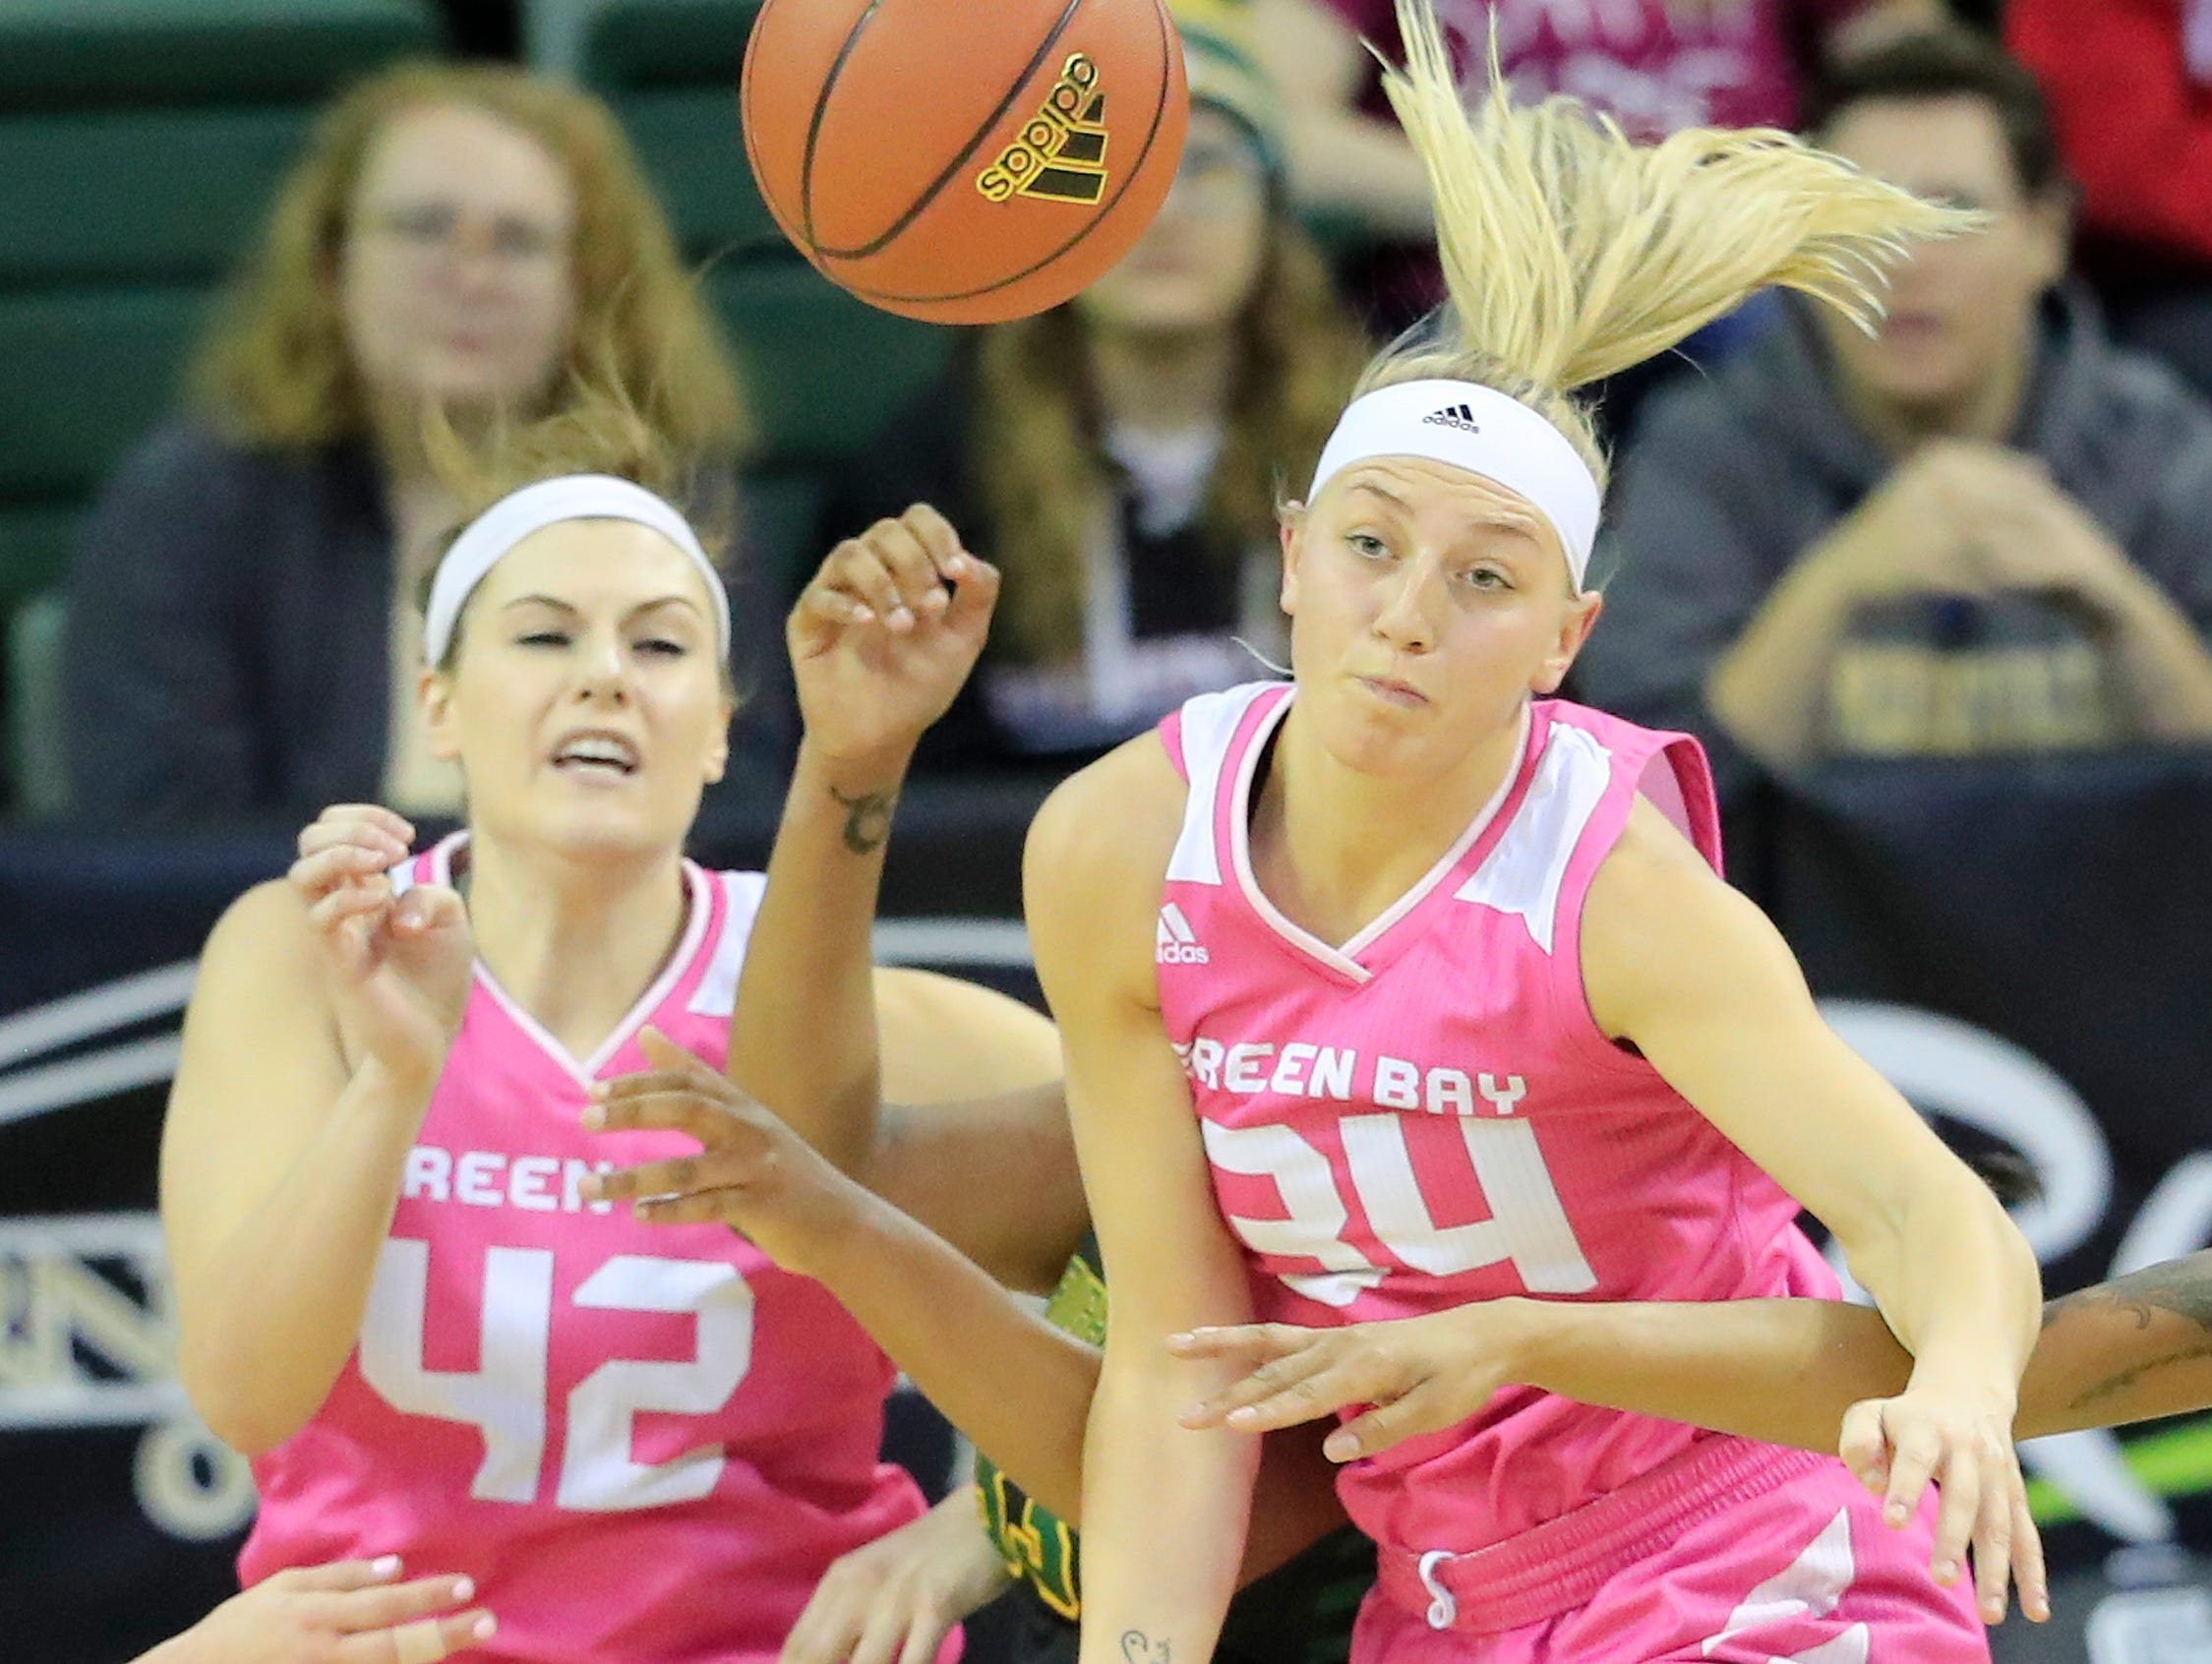 Green Bay Phoenix forward/center Mackenzie Wolf (42) and forward Carly Mohns (34) compete for a rebound against the Wright State Raiders in a Horizon League women's basketball game at the Kress Center on Saturday, February 9, 2019 in Green Bay, Wis.